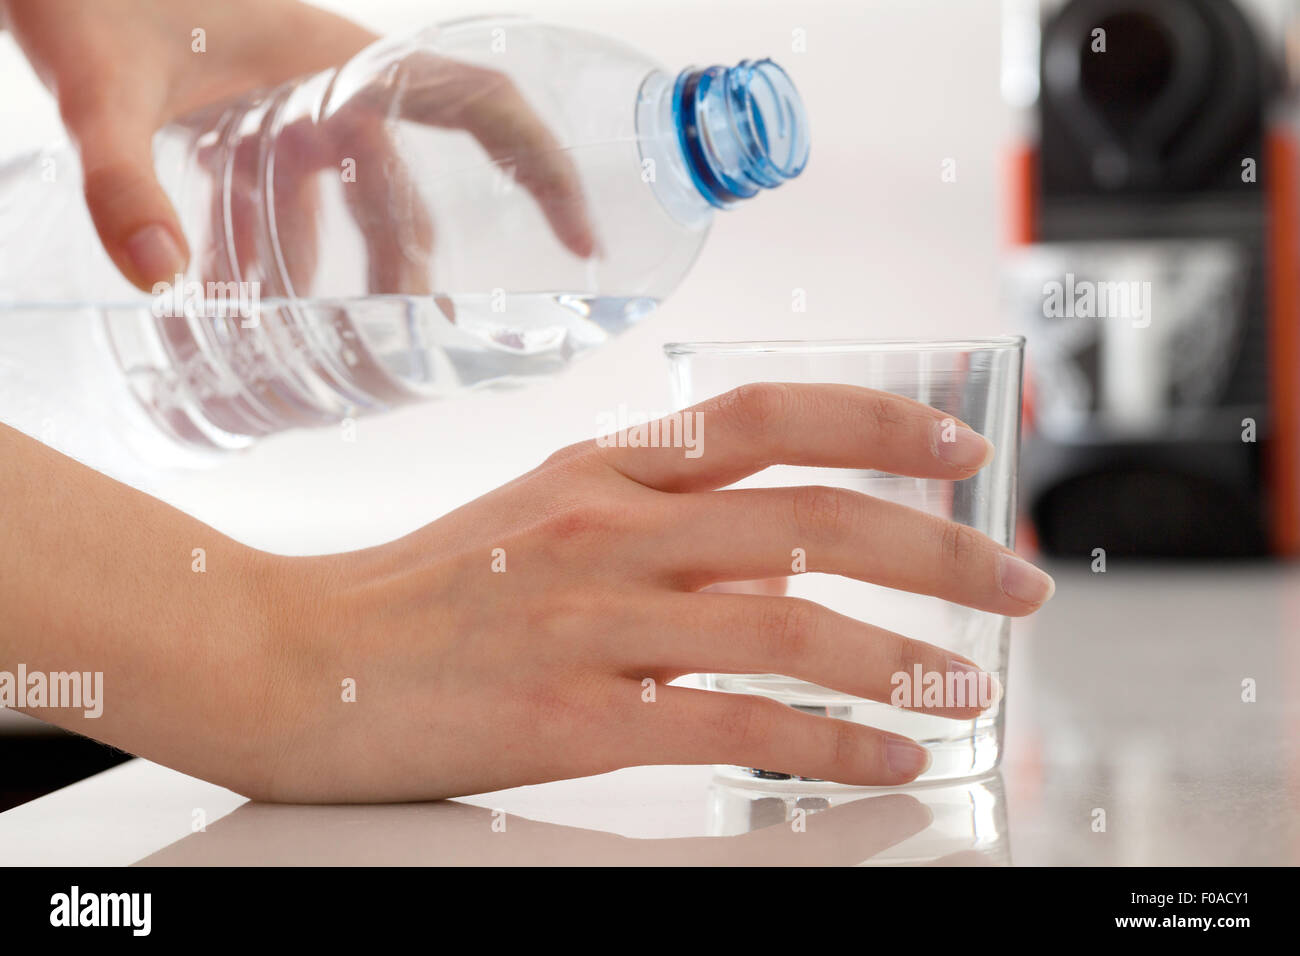 Female hands pouring bottled water into glass - Stock Image